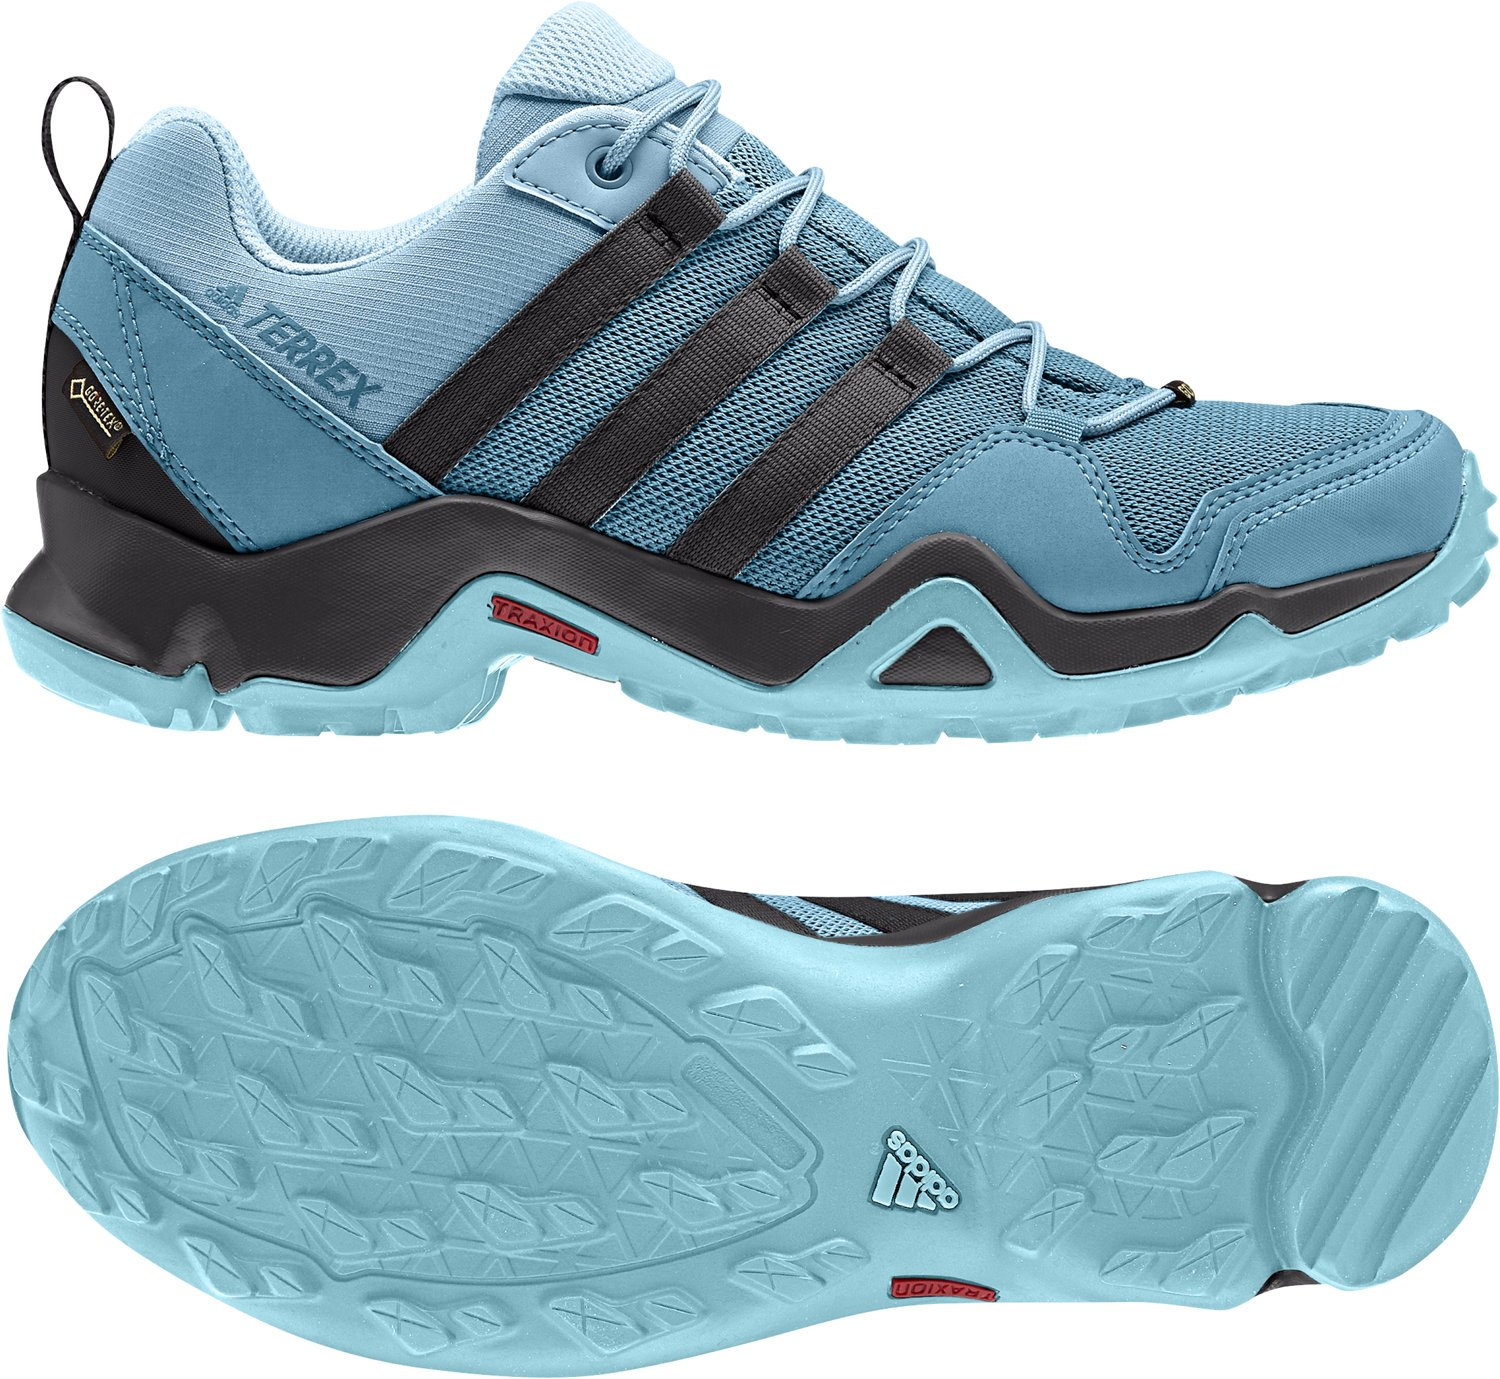 adidas outdoor Women's Terrex AX2R GTX Vapour Blue/Utility Black/Clear Aqua 6.5 B US by adidas outdoor (Image #1)